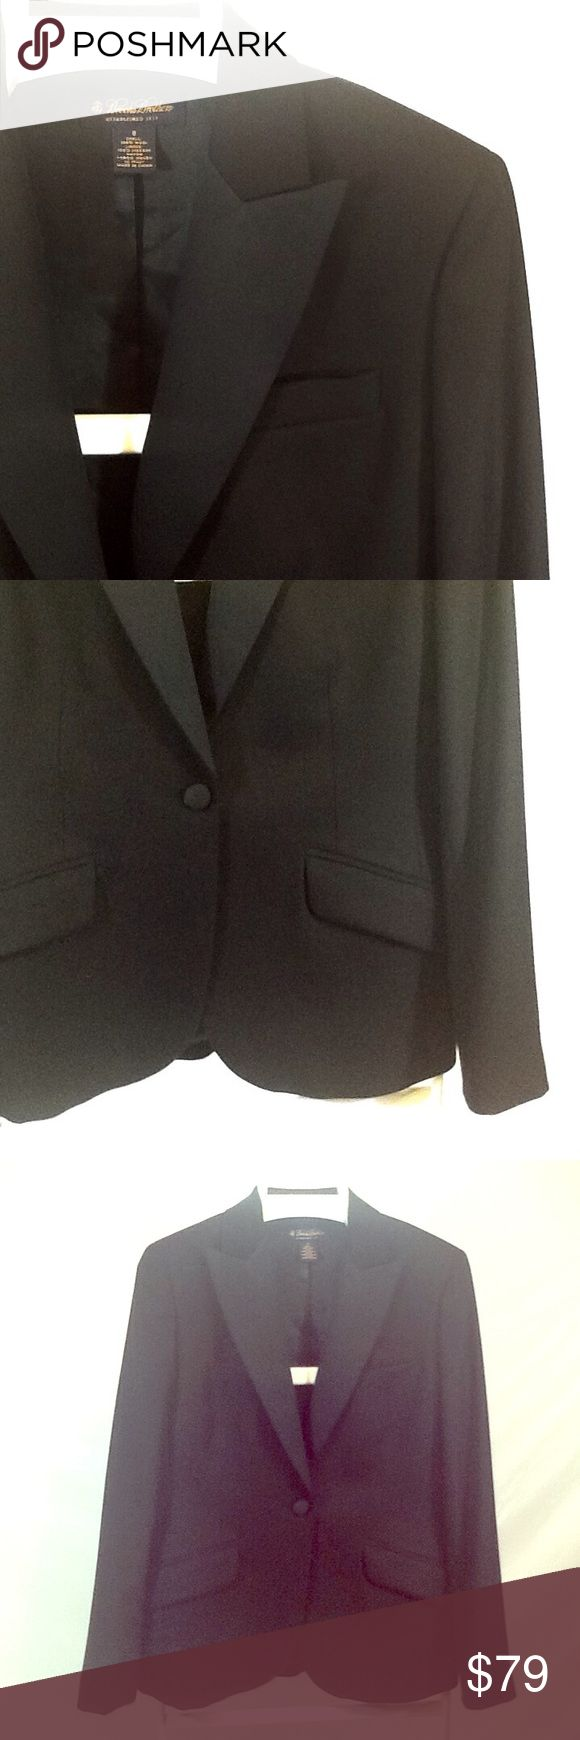 Brooks Brothers women's tuxedo jacket Like new condition. Fully lined. Black twill texture 100% wool. Peaked  lapels and covered buttons are satin. Breast pocket, single button close, curved front hem, flap pockets, shaping at waist, four button cuffs. Impeccable tailoring, perfect for holidays! Brooks Brothers Jackets & Coats Blazers